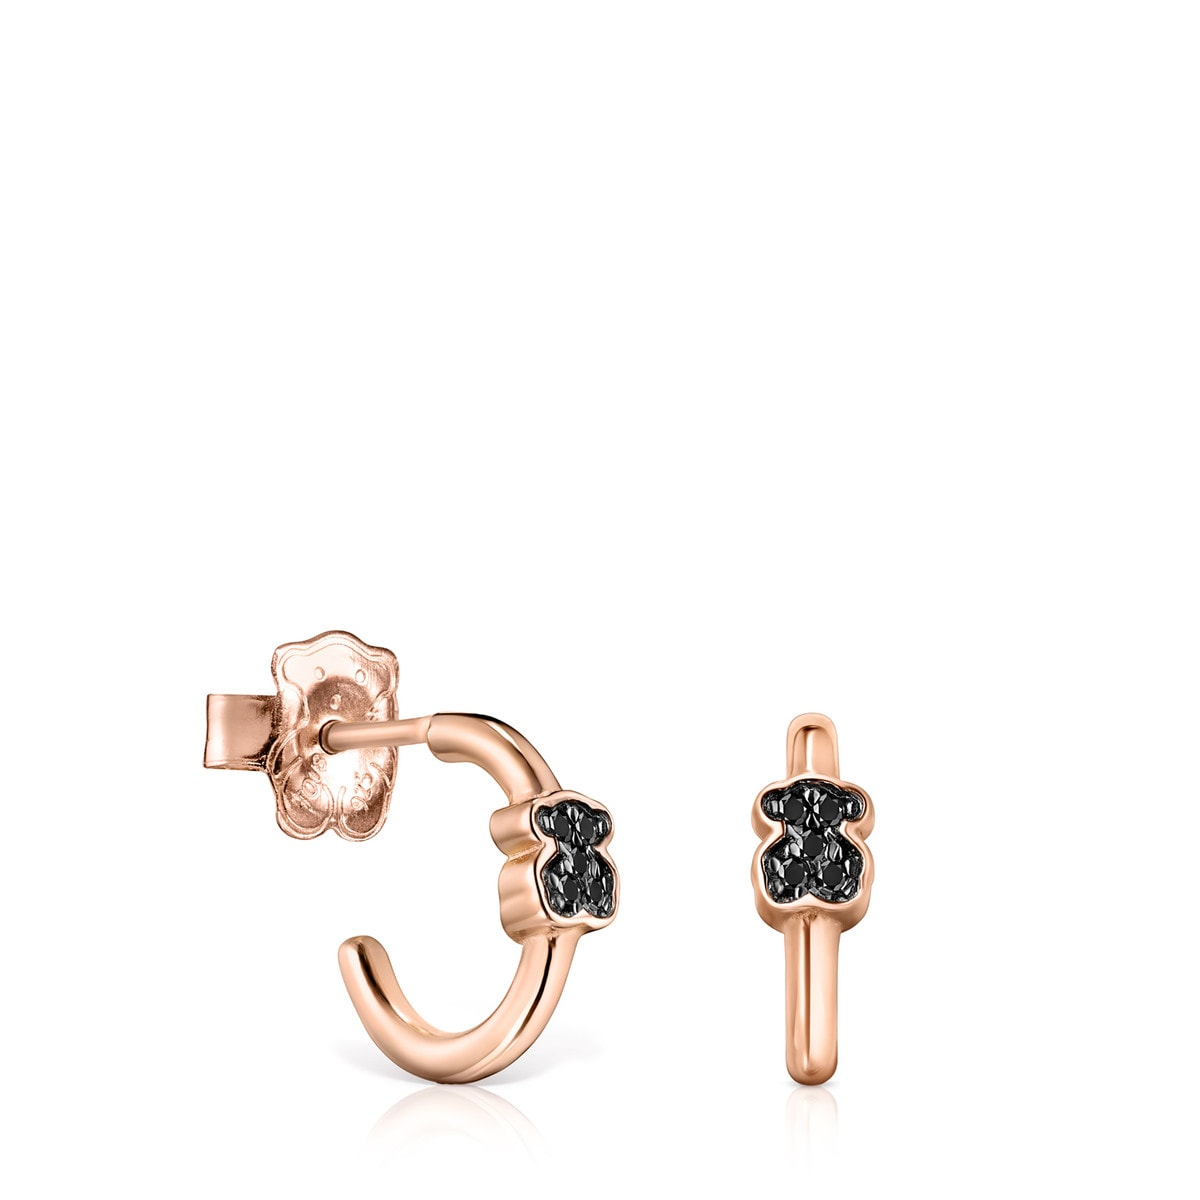 Rose Gold Vermeil Motif Earrings with Spinels